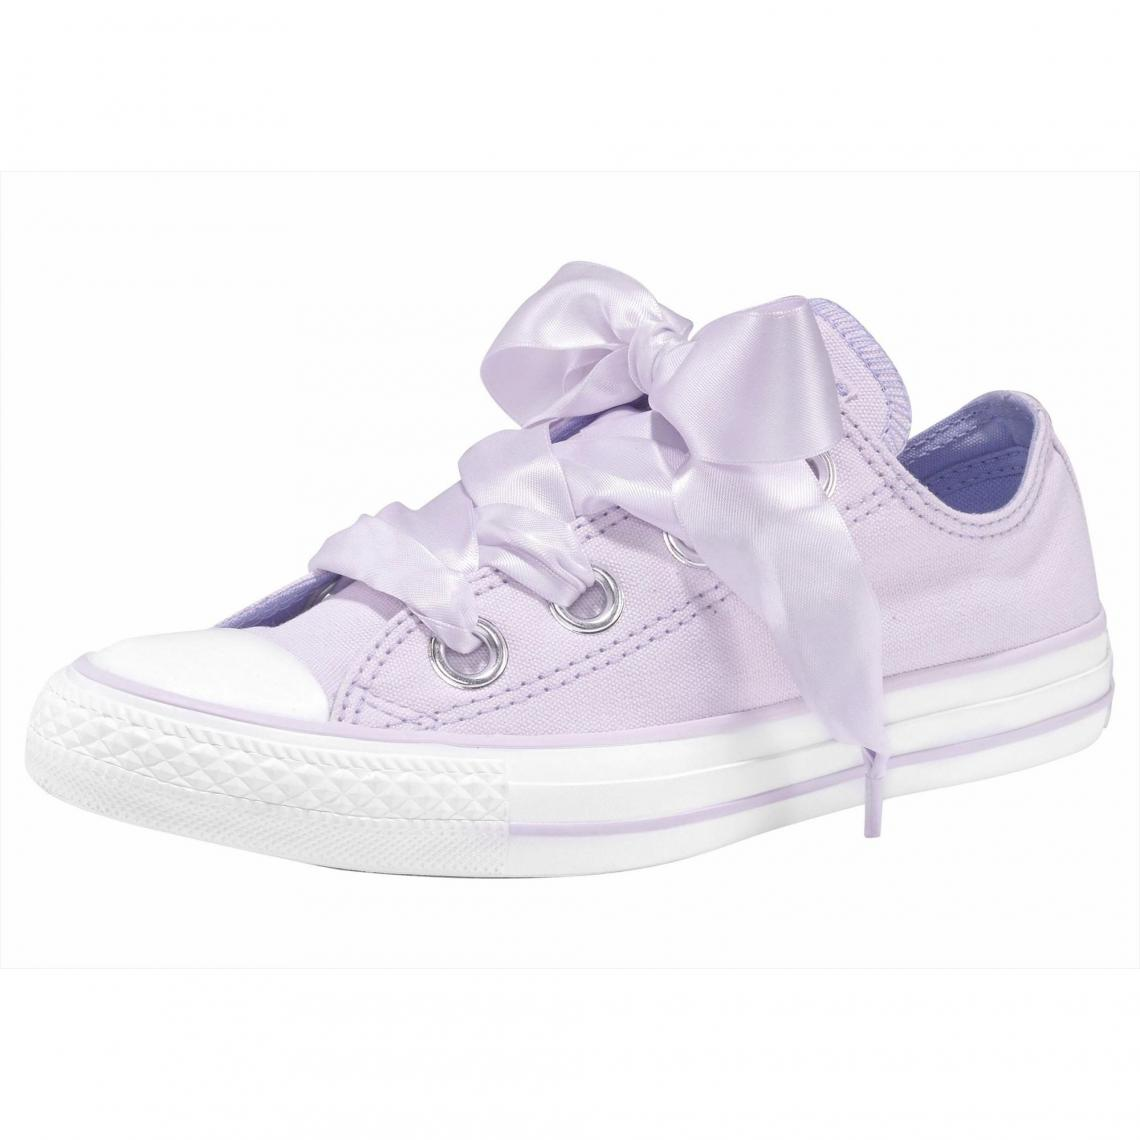 sneakers for cheap 19793 37ad9 Baskets basses femme Converse Chuck Taylor All Star Ox Big Eyelet - Lilas Converse  Femme